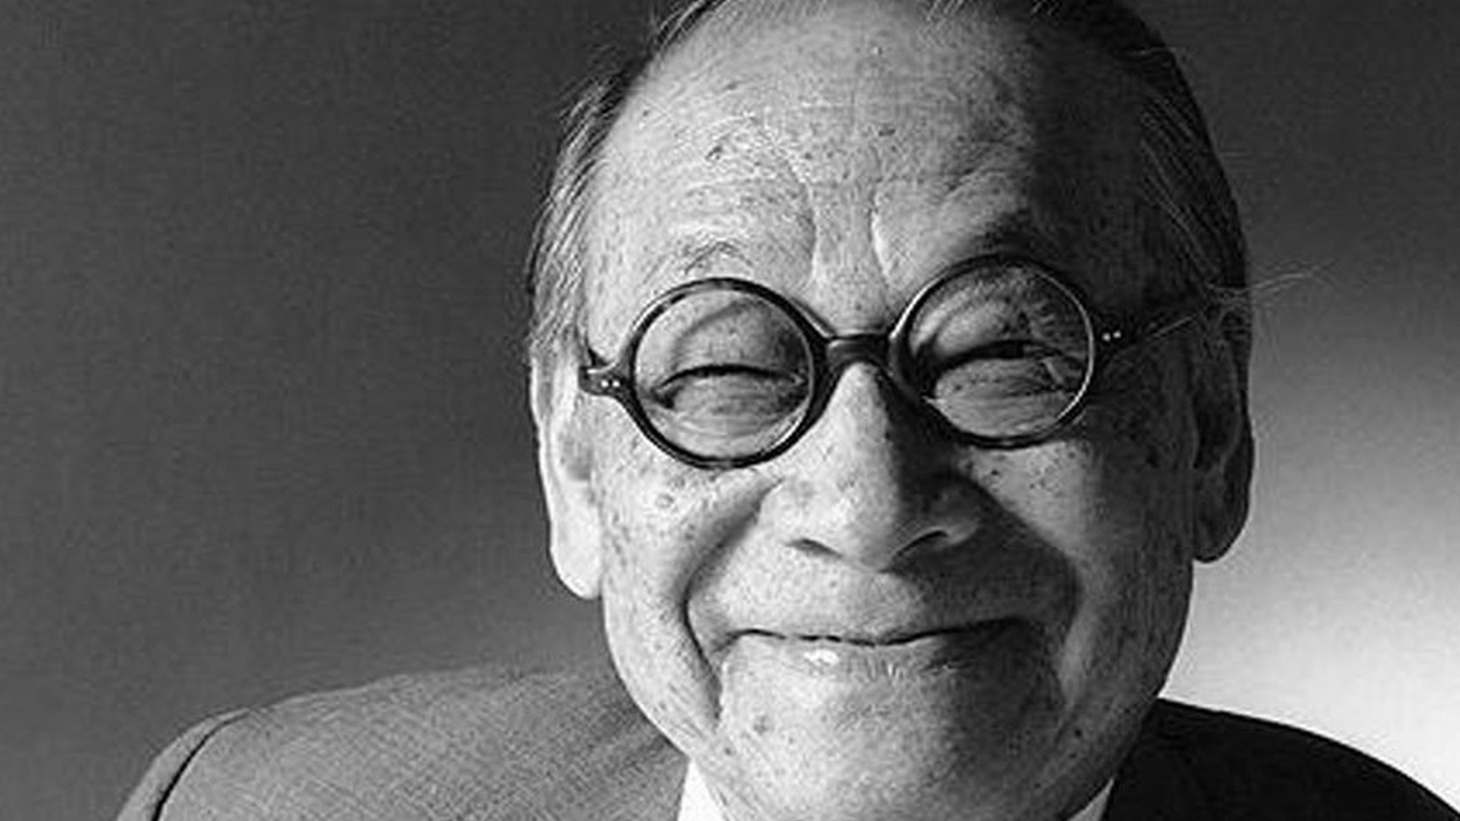 A portrait of Chinese-American architect I.M. Pei.